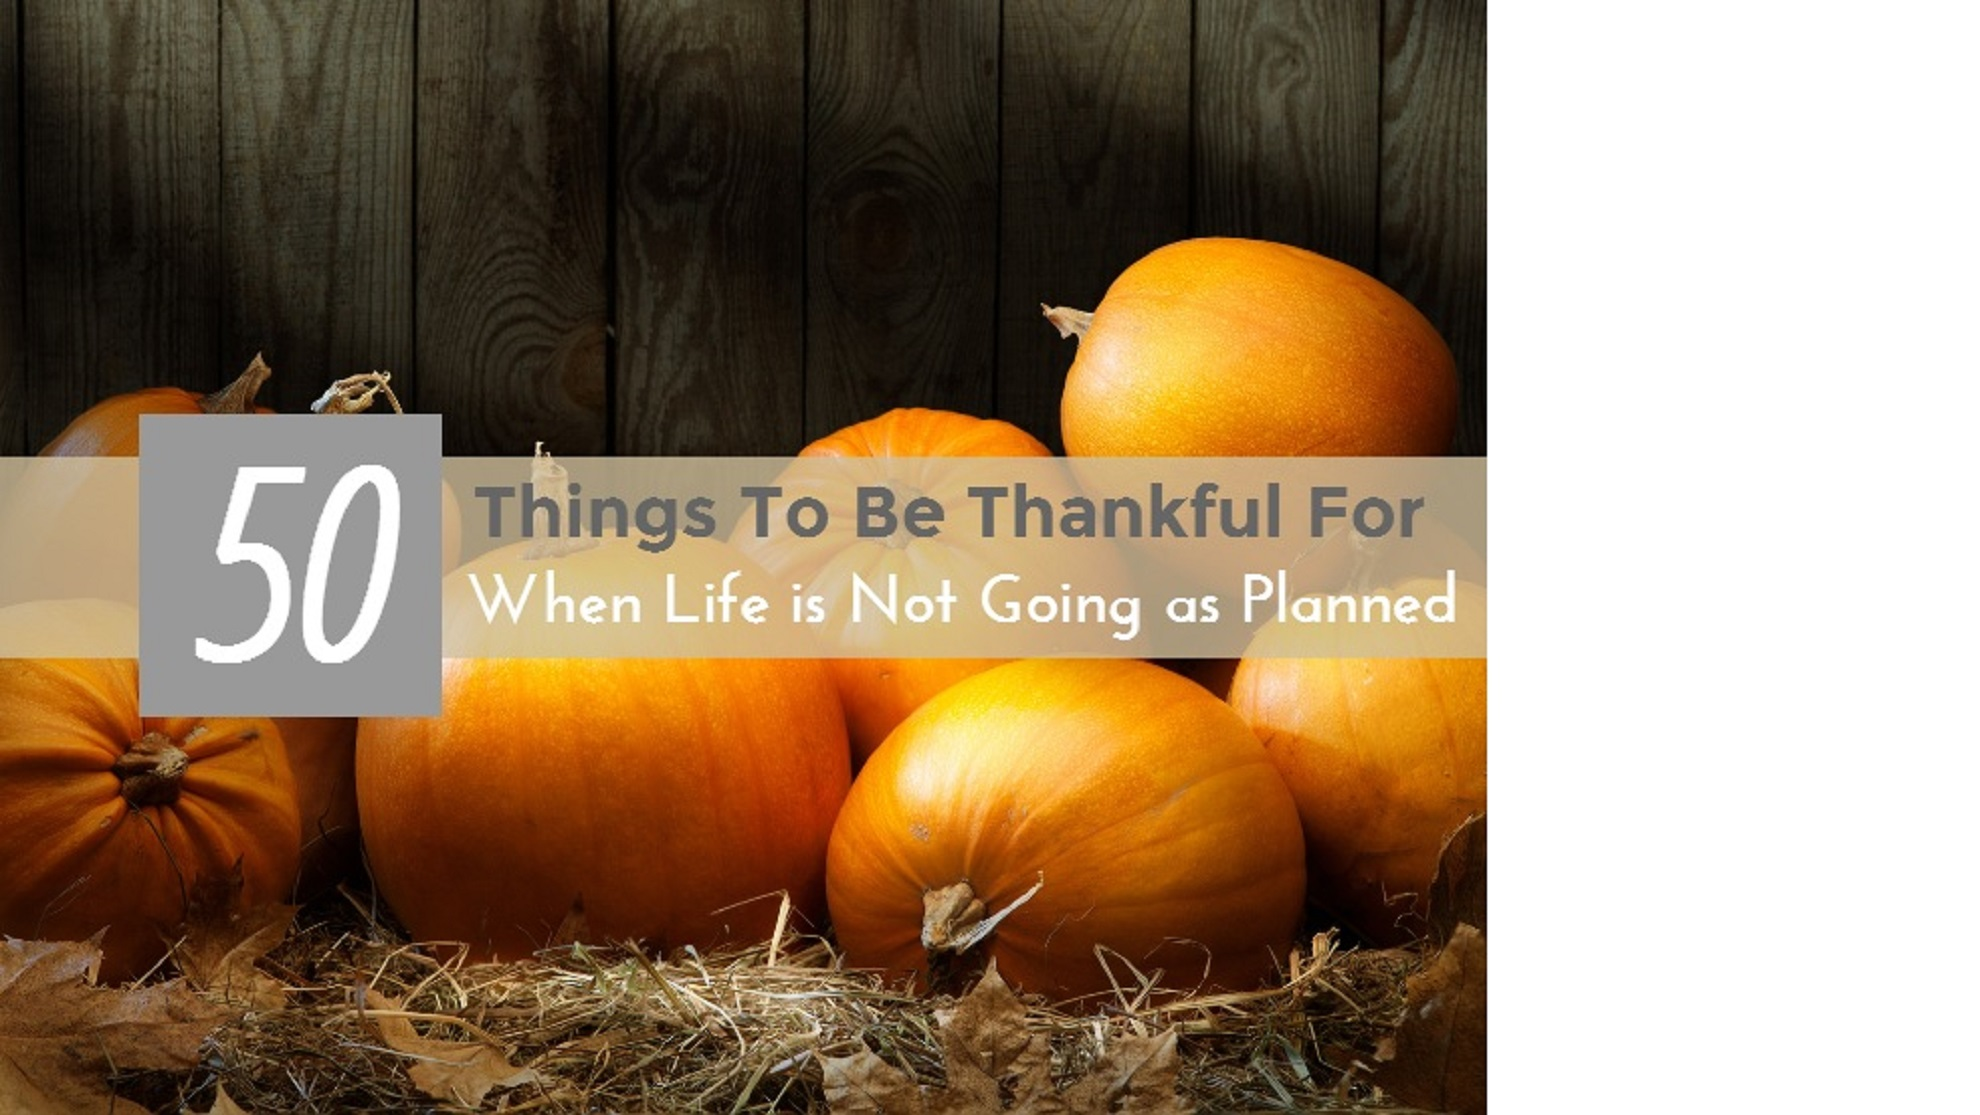 50 Things To Be Thankful For When Life is Not Going as Planned (#26-50)